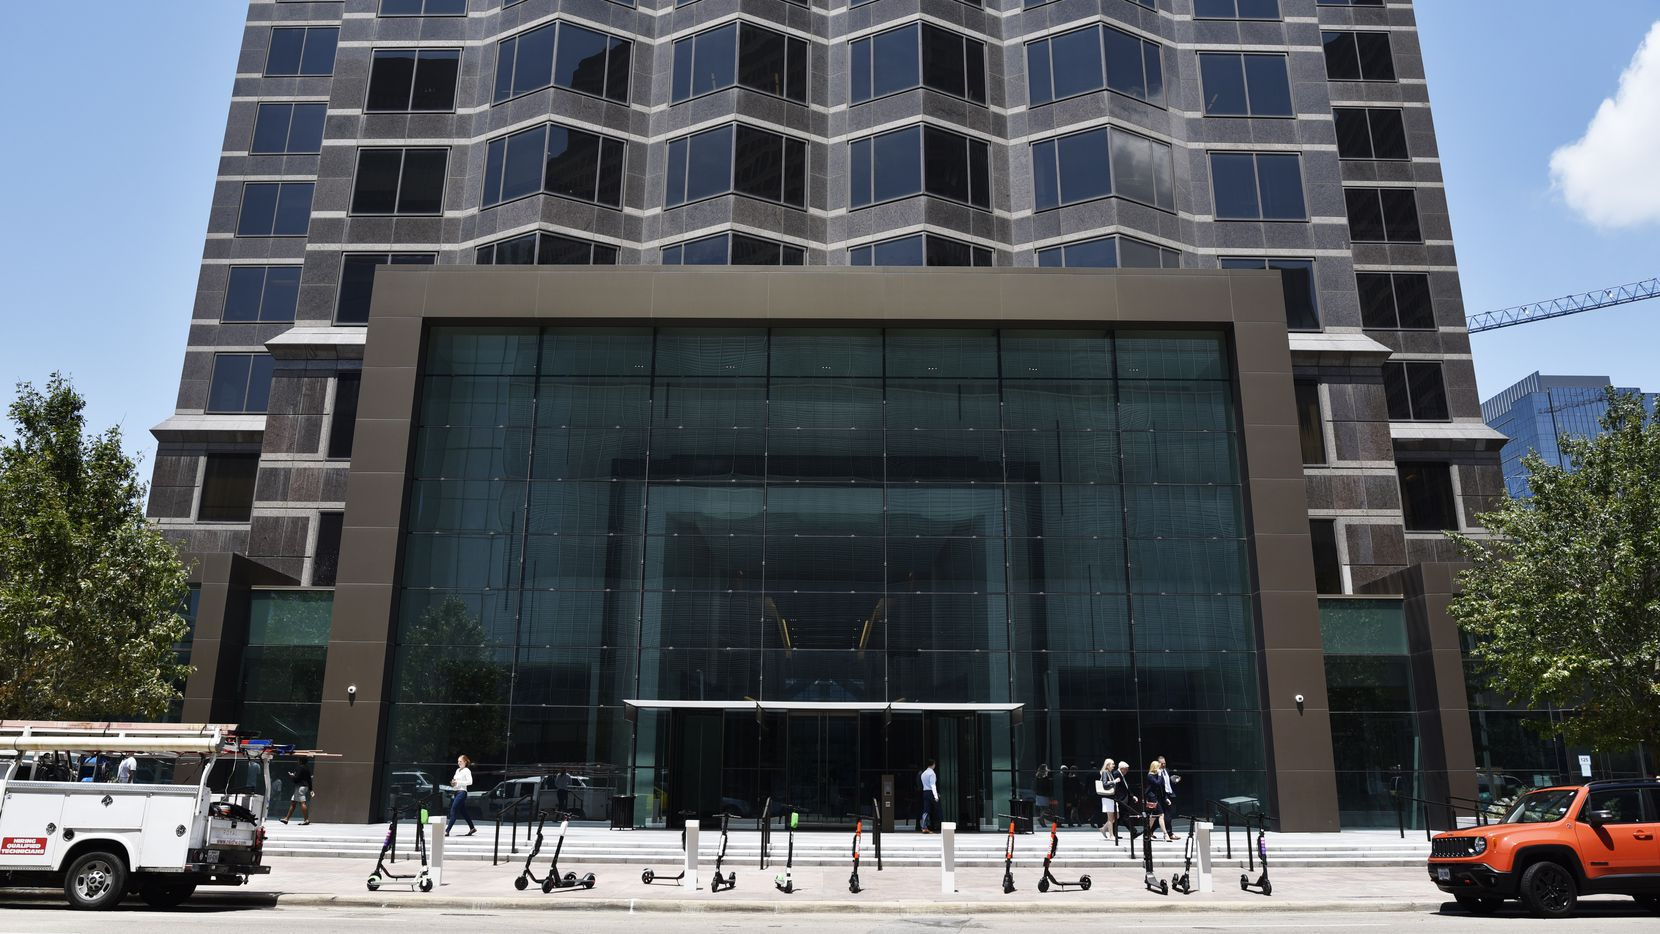 Orix USA is moving its headquarters to the Trammell Crow Center on Ross Avenue.